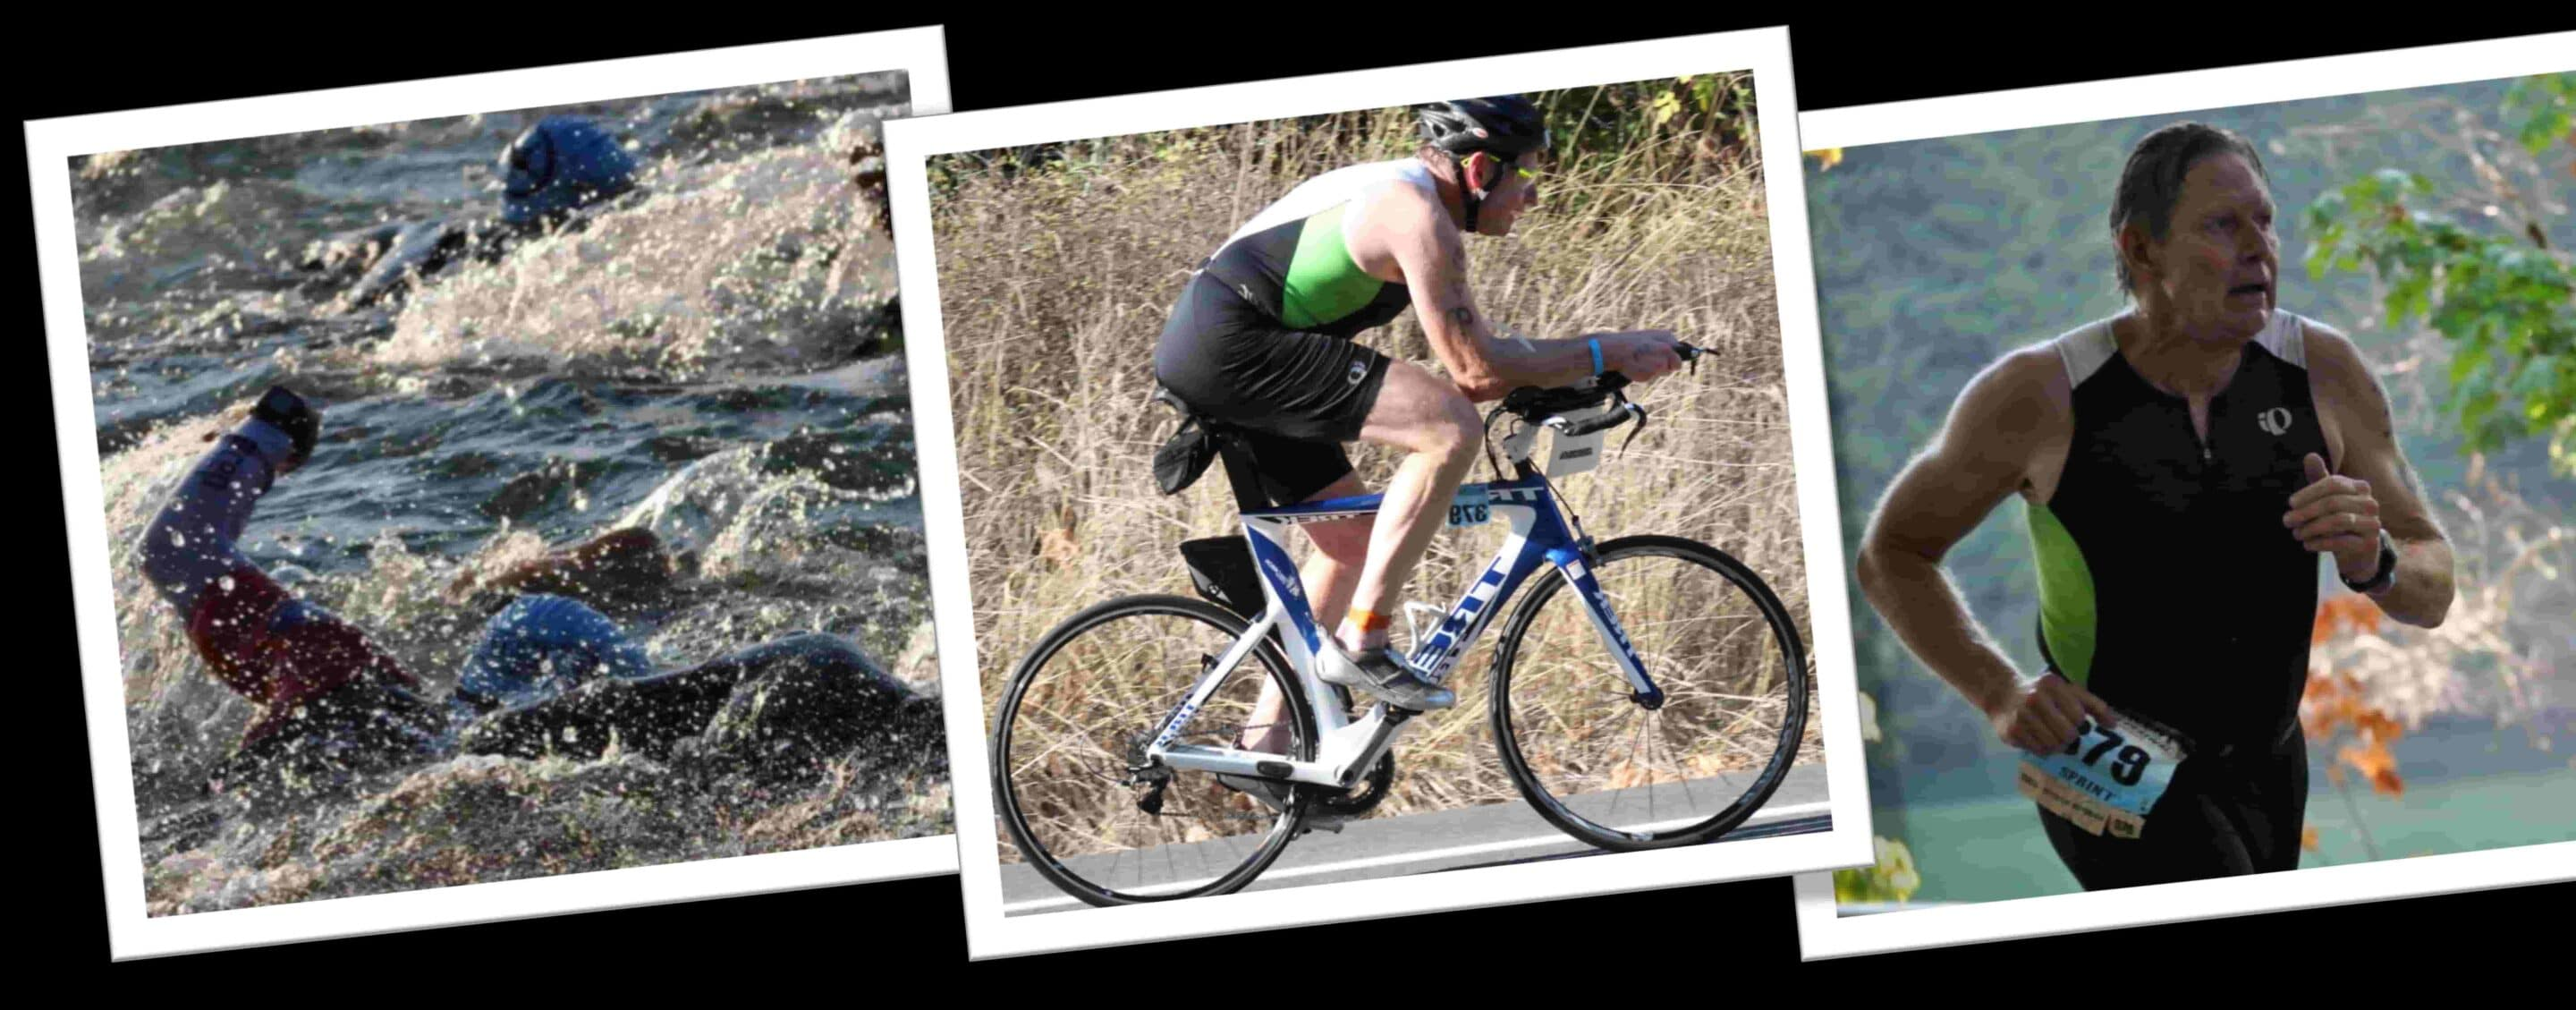 Header Image - Inspiration for Triathletes Over 50